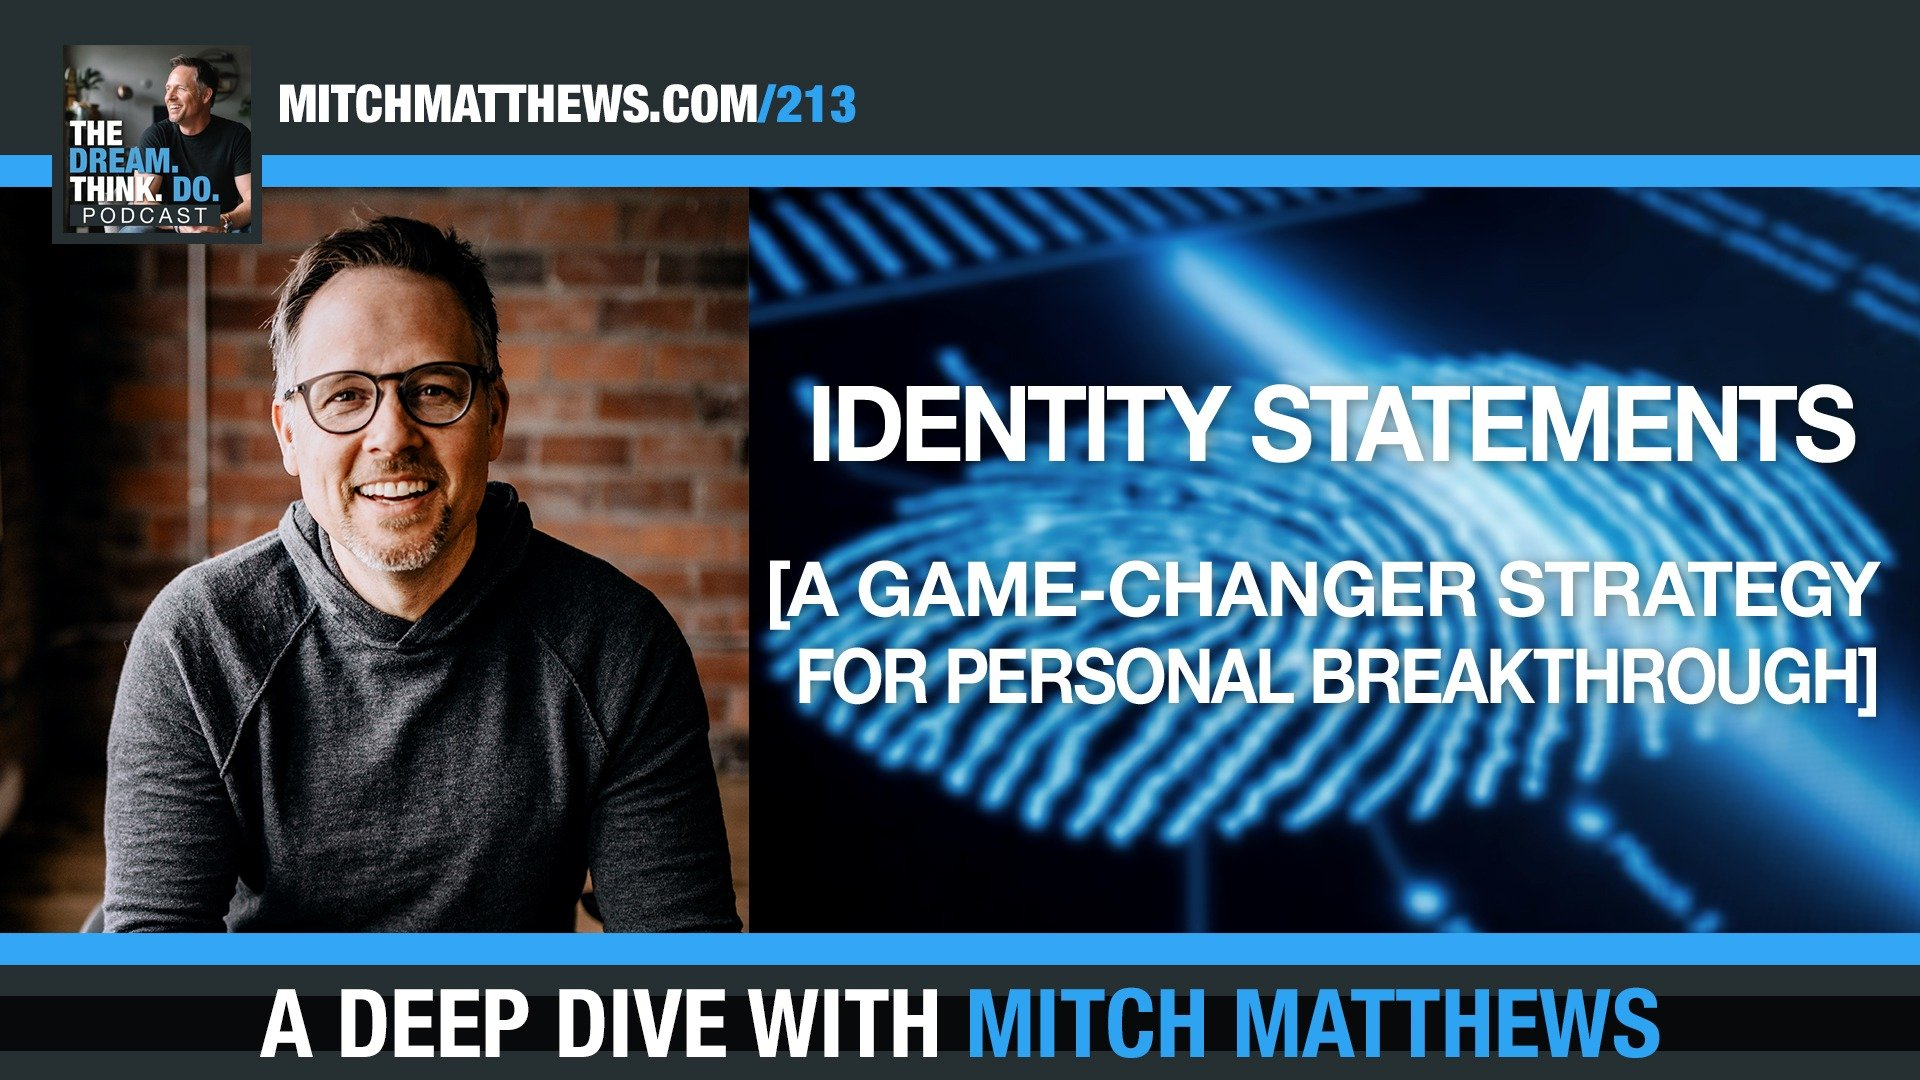 Intentional Identity Statements (A Gamechanger Strategy for Personal Breakthrough!) with Mitch Matthews